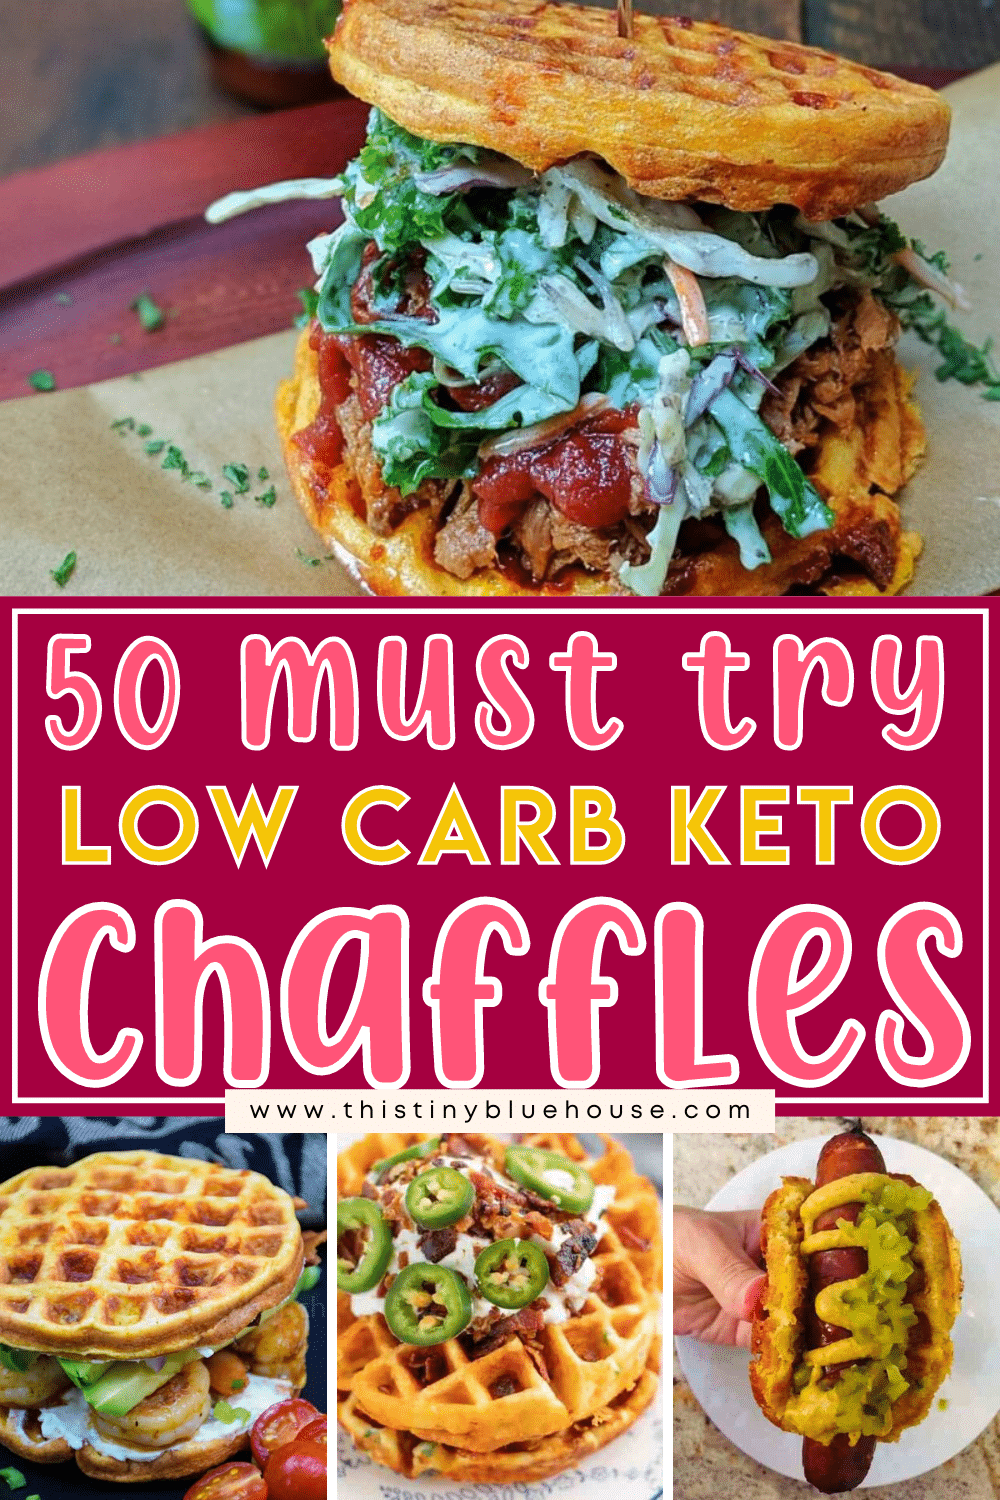 50 beyond delicious Keto Chaffle Recipes